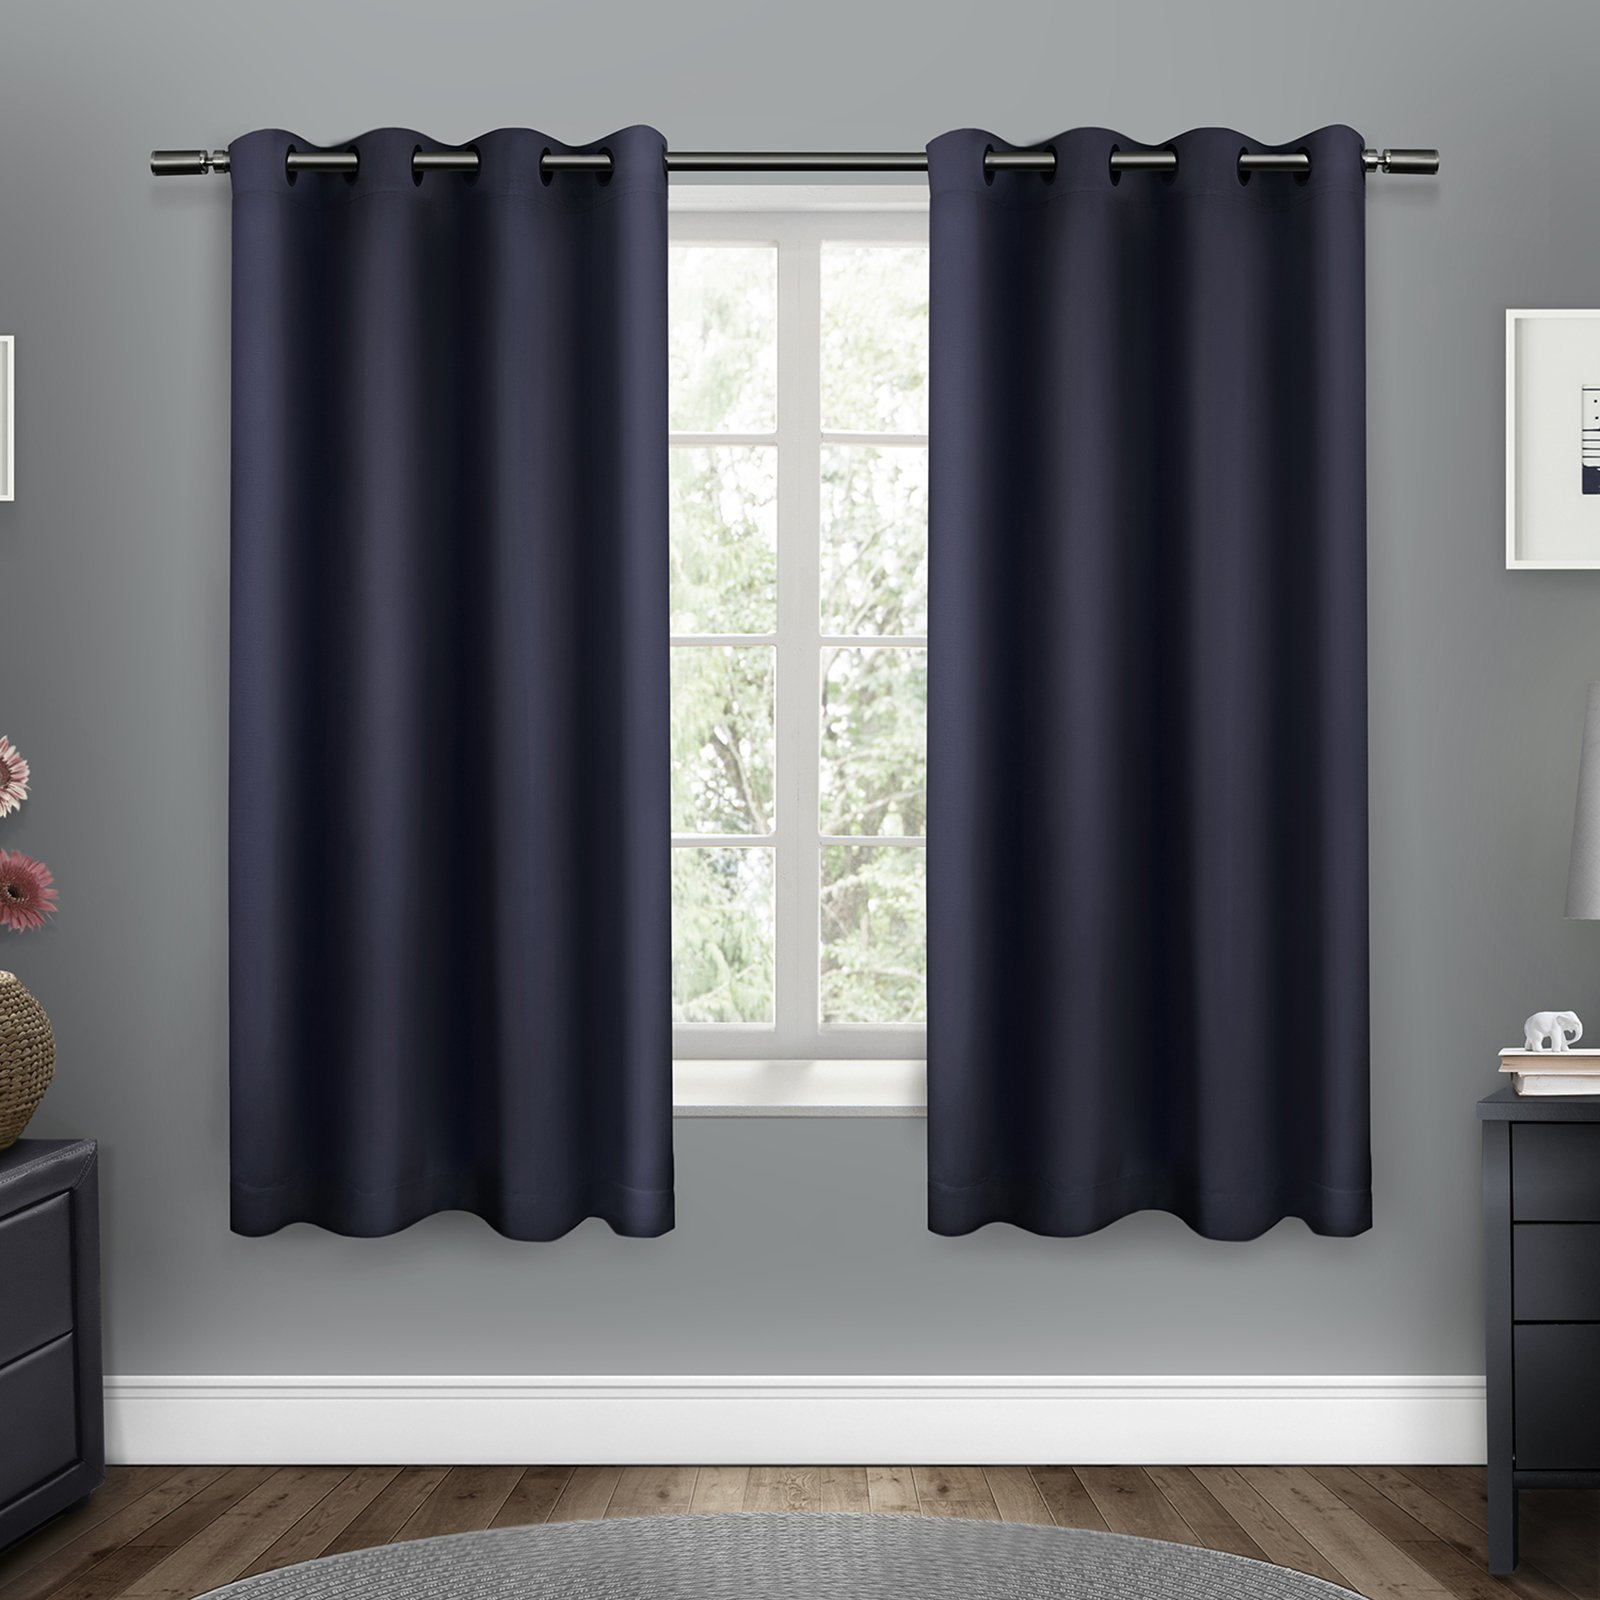 Set Of 2 Sateen Twill Weave Insulated Blackout Grommet Top Regarding Eclipse Darrell Thermaweave Blackout Window Curtain Panels (View 13 of 20)